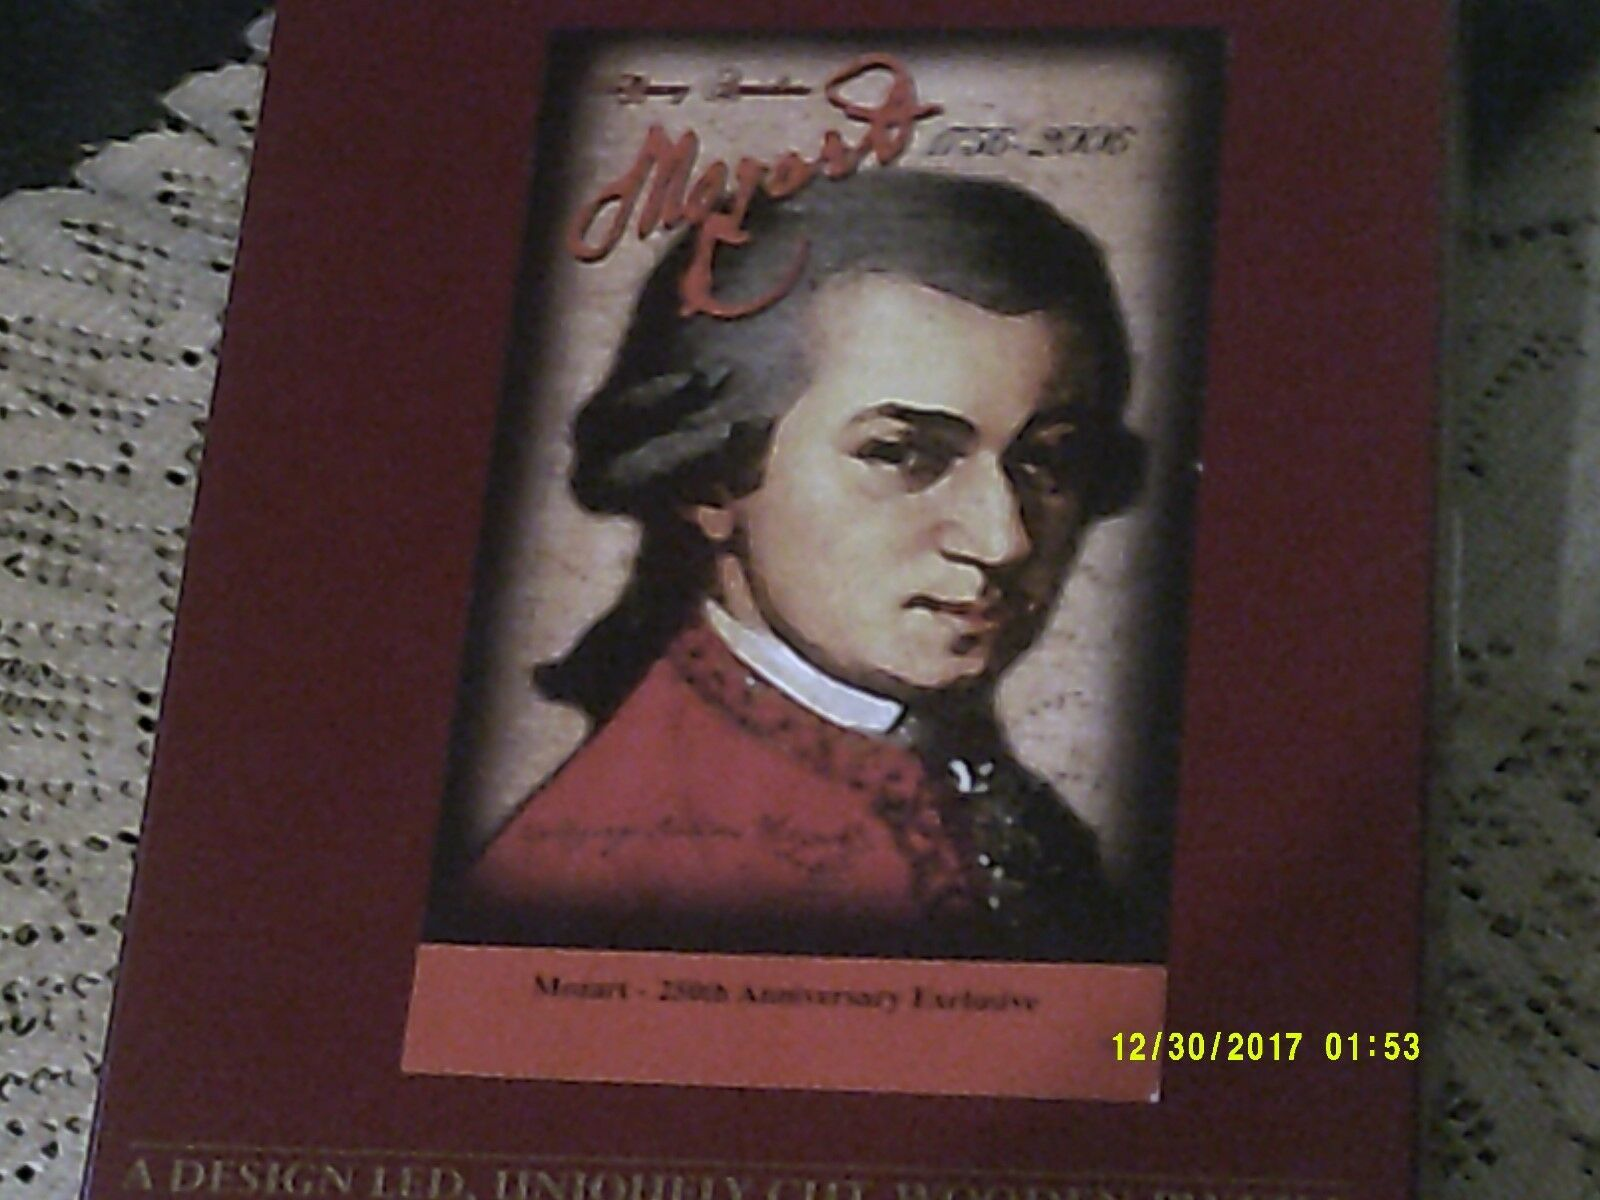 RARE EARLY WENTWORTH 250 'MOZART 250TH ANNIVERSARY EXCLUSIVE' PAINTING